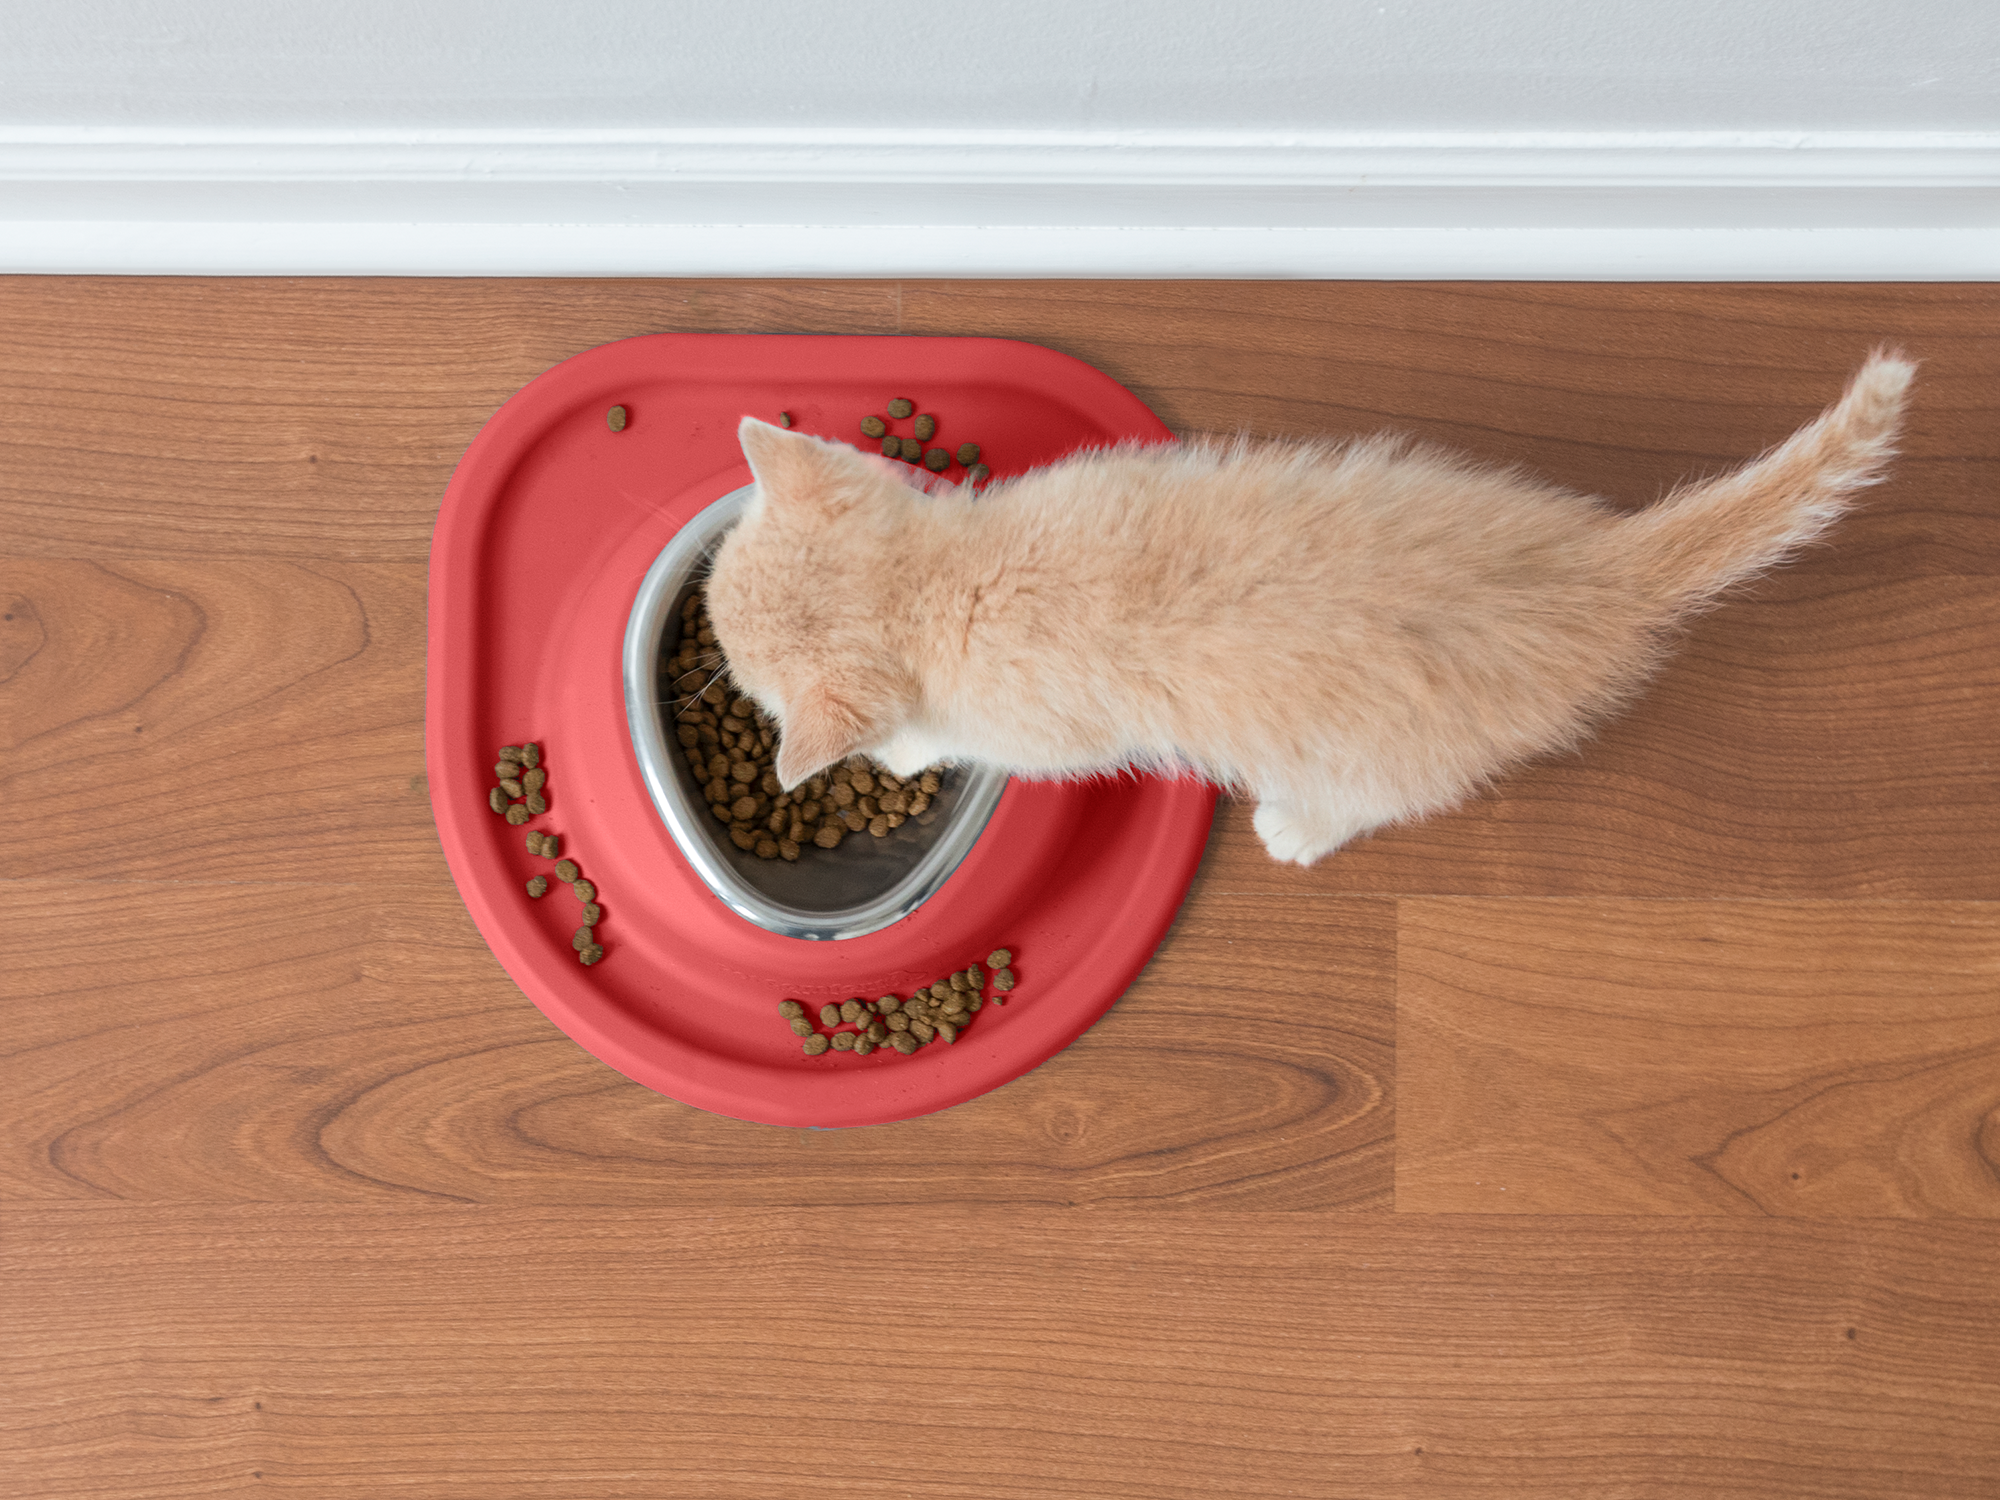 Tabby_kitten_Eating_singlebowl_red_